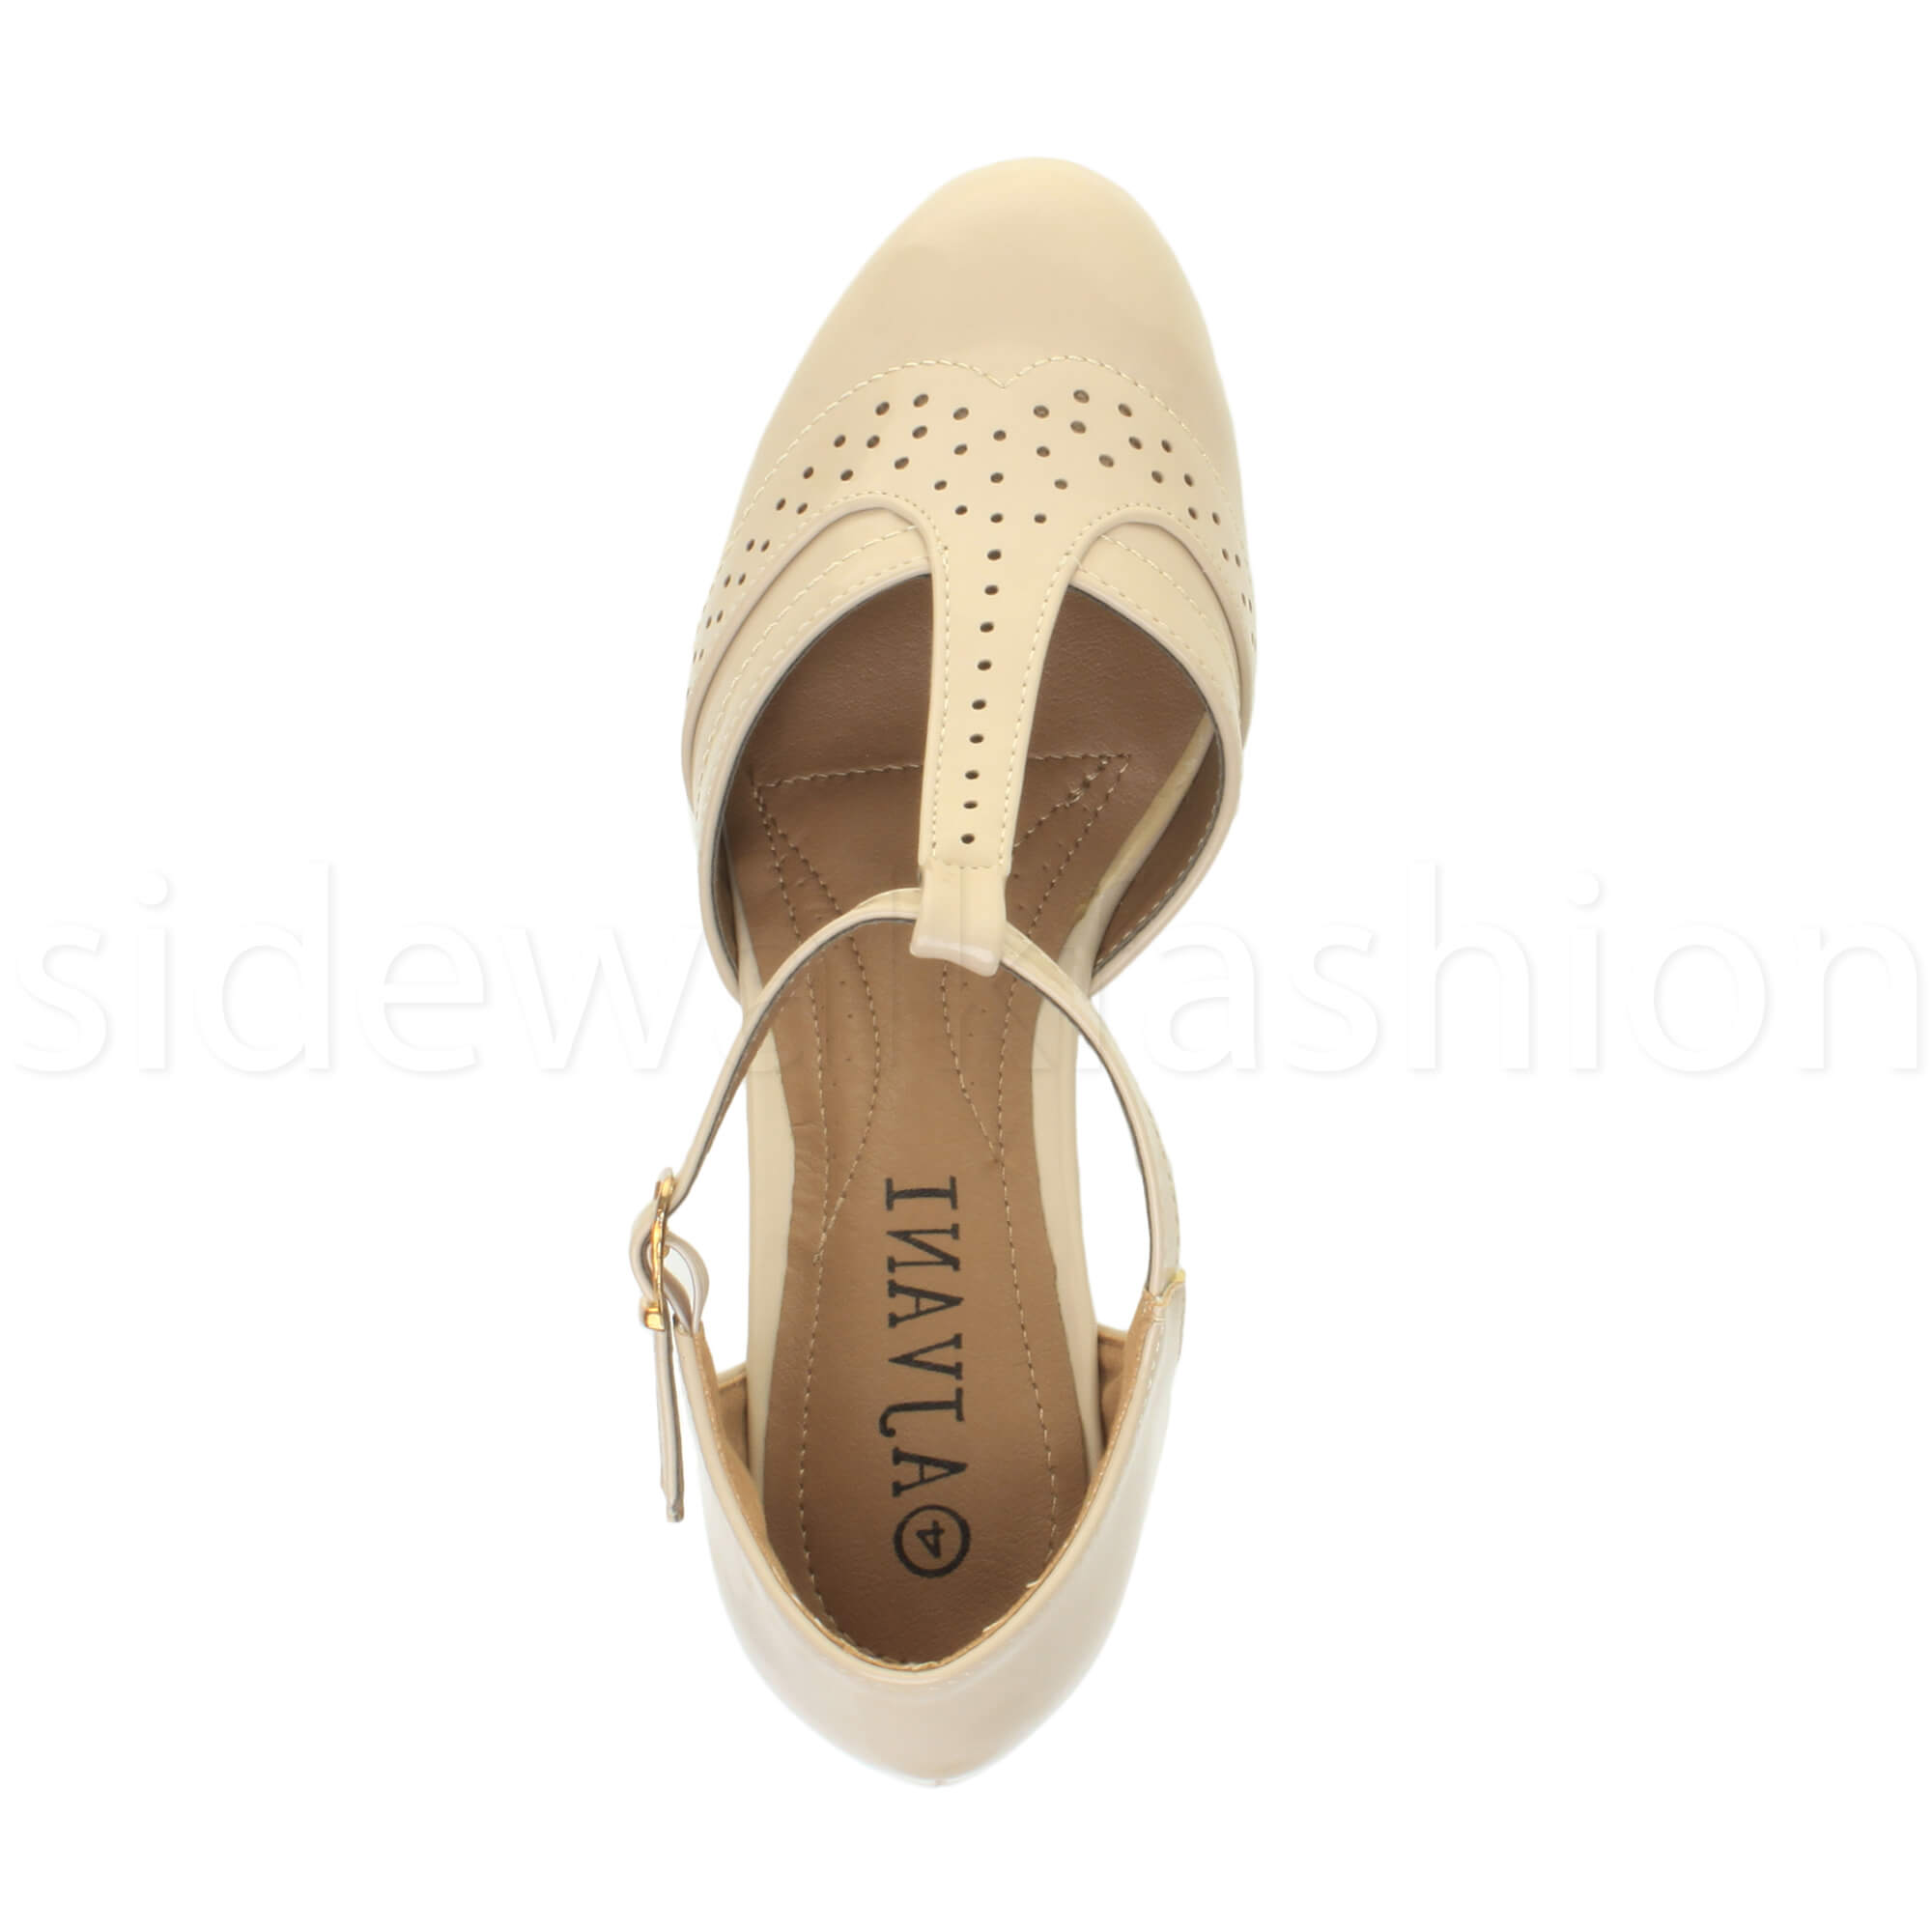 Womens-ladies-block-low-mid-heel-smart-work-Mary-Jane-T-bar-brogue-court-shoes thumbnail 55